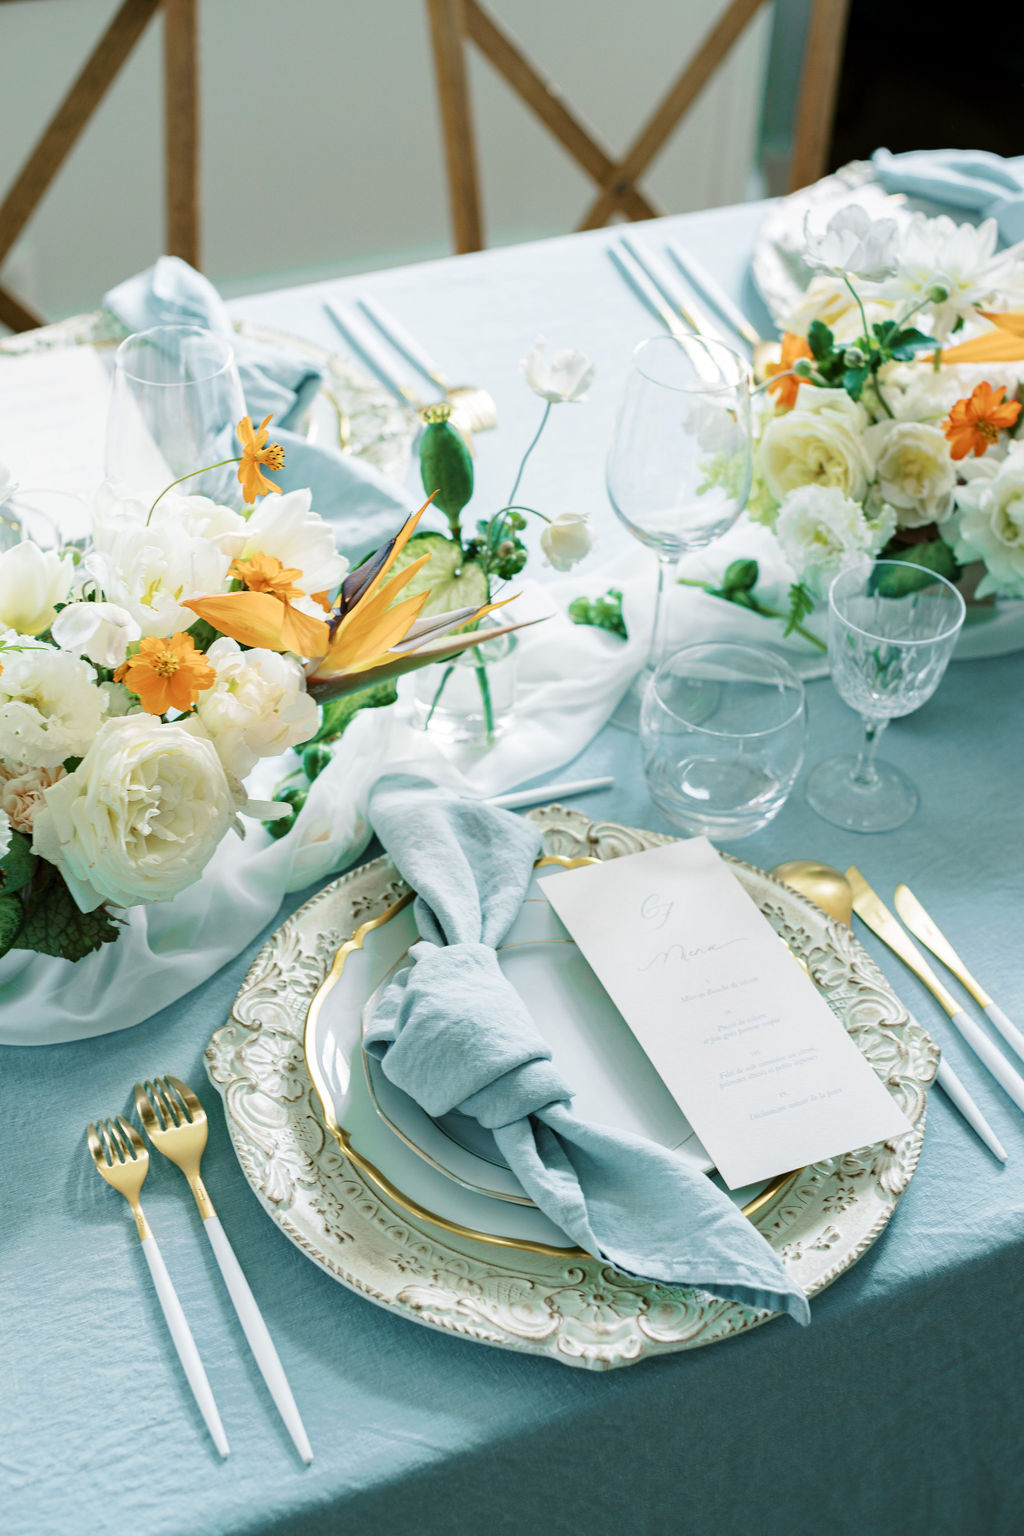 elegant blue, white, and orange place settings with ornate plates and silverware